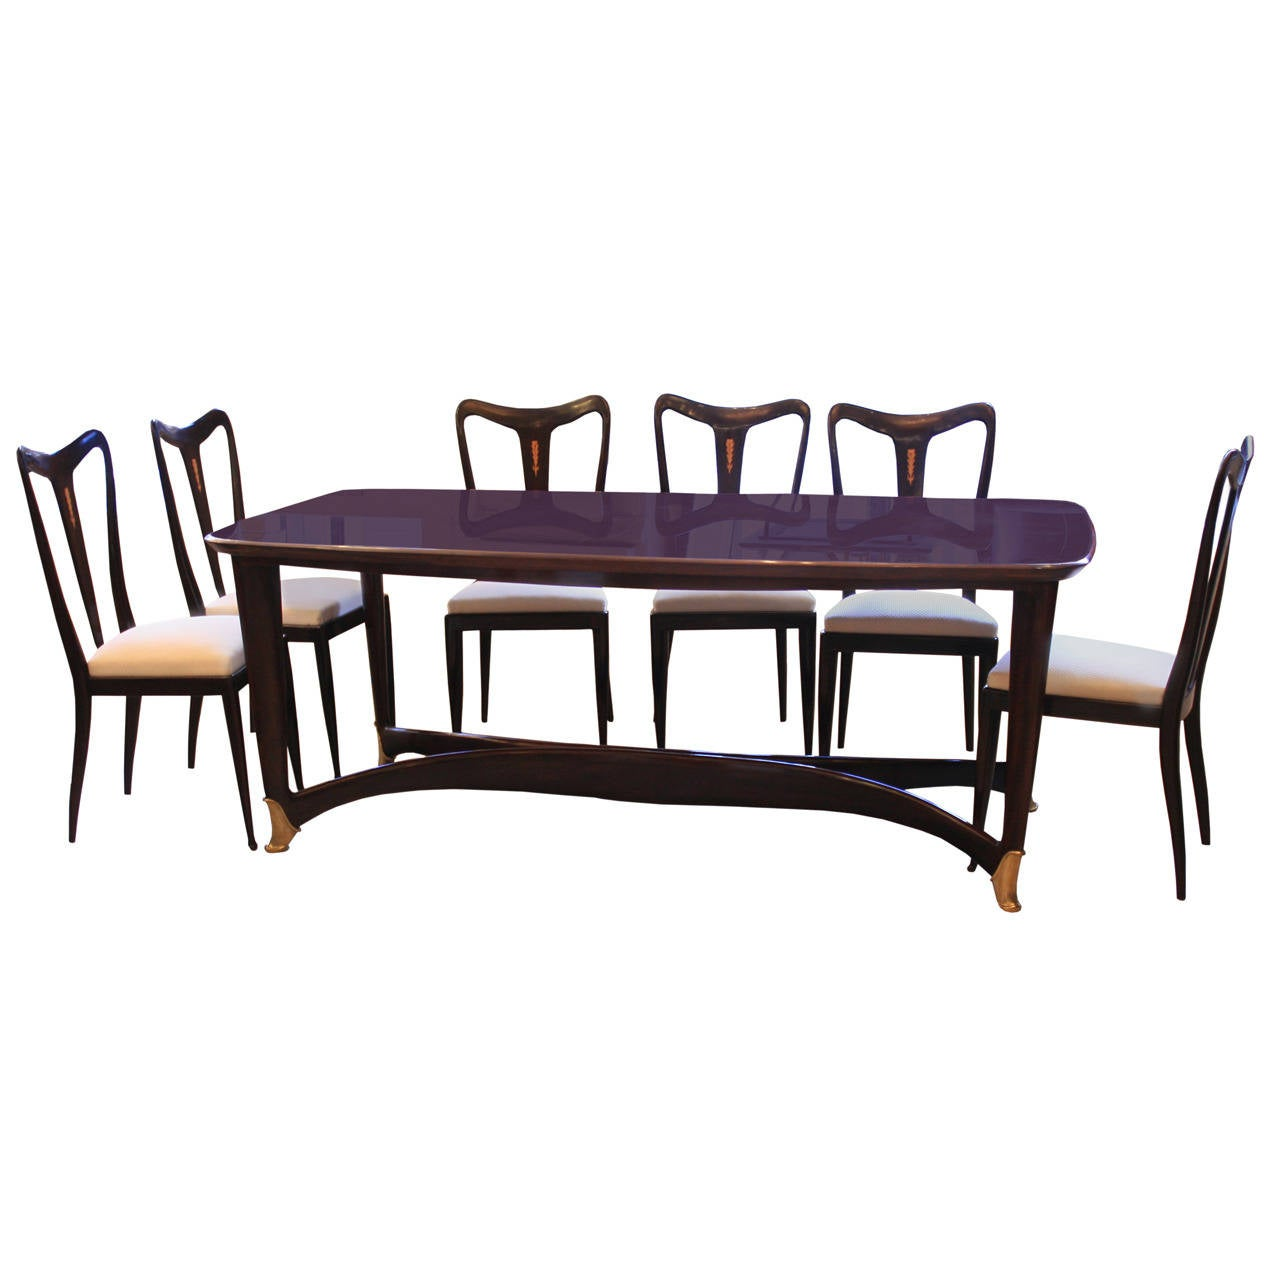 Dining Table with Six Matching Chairs at 1stdibs : 1556952l from 1stdibs.com size 1280 x 1280 jpeg 73kB